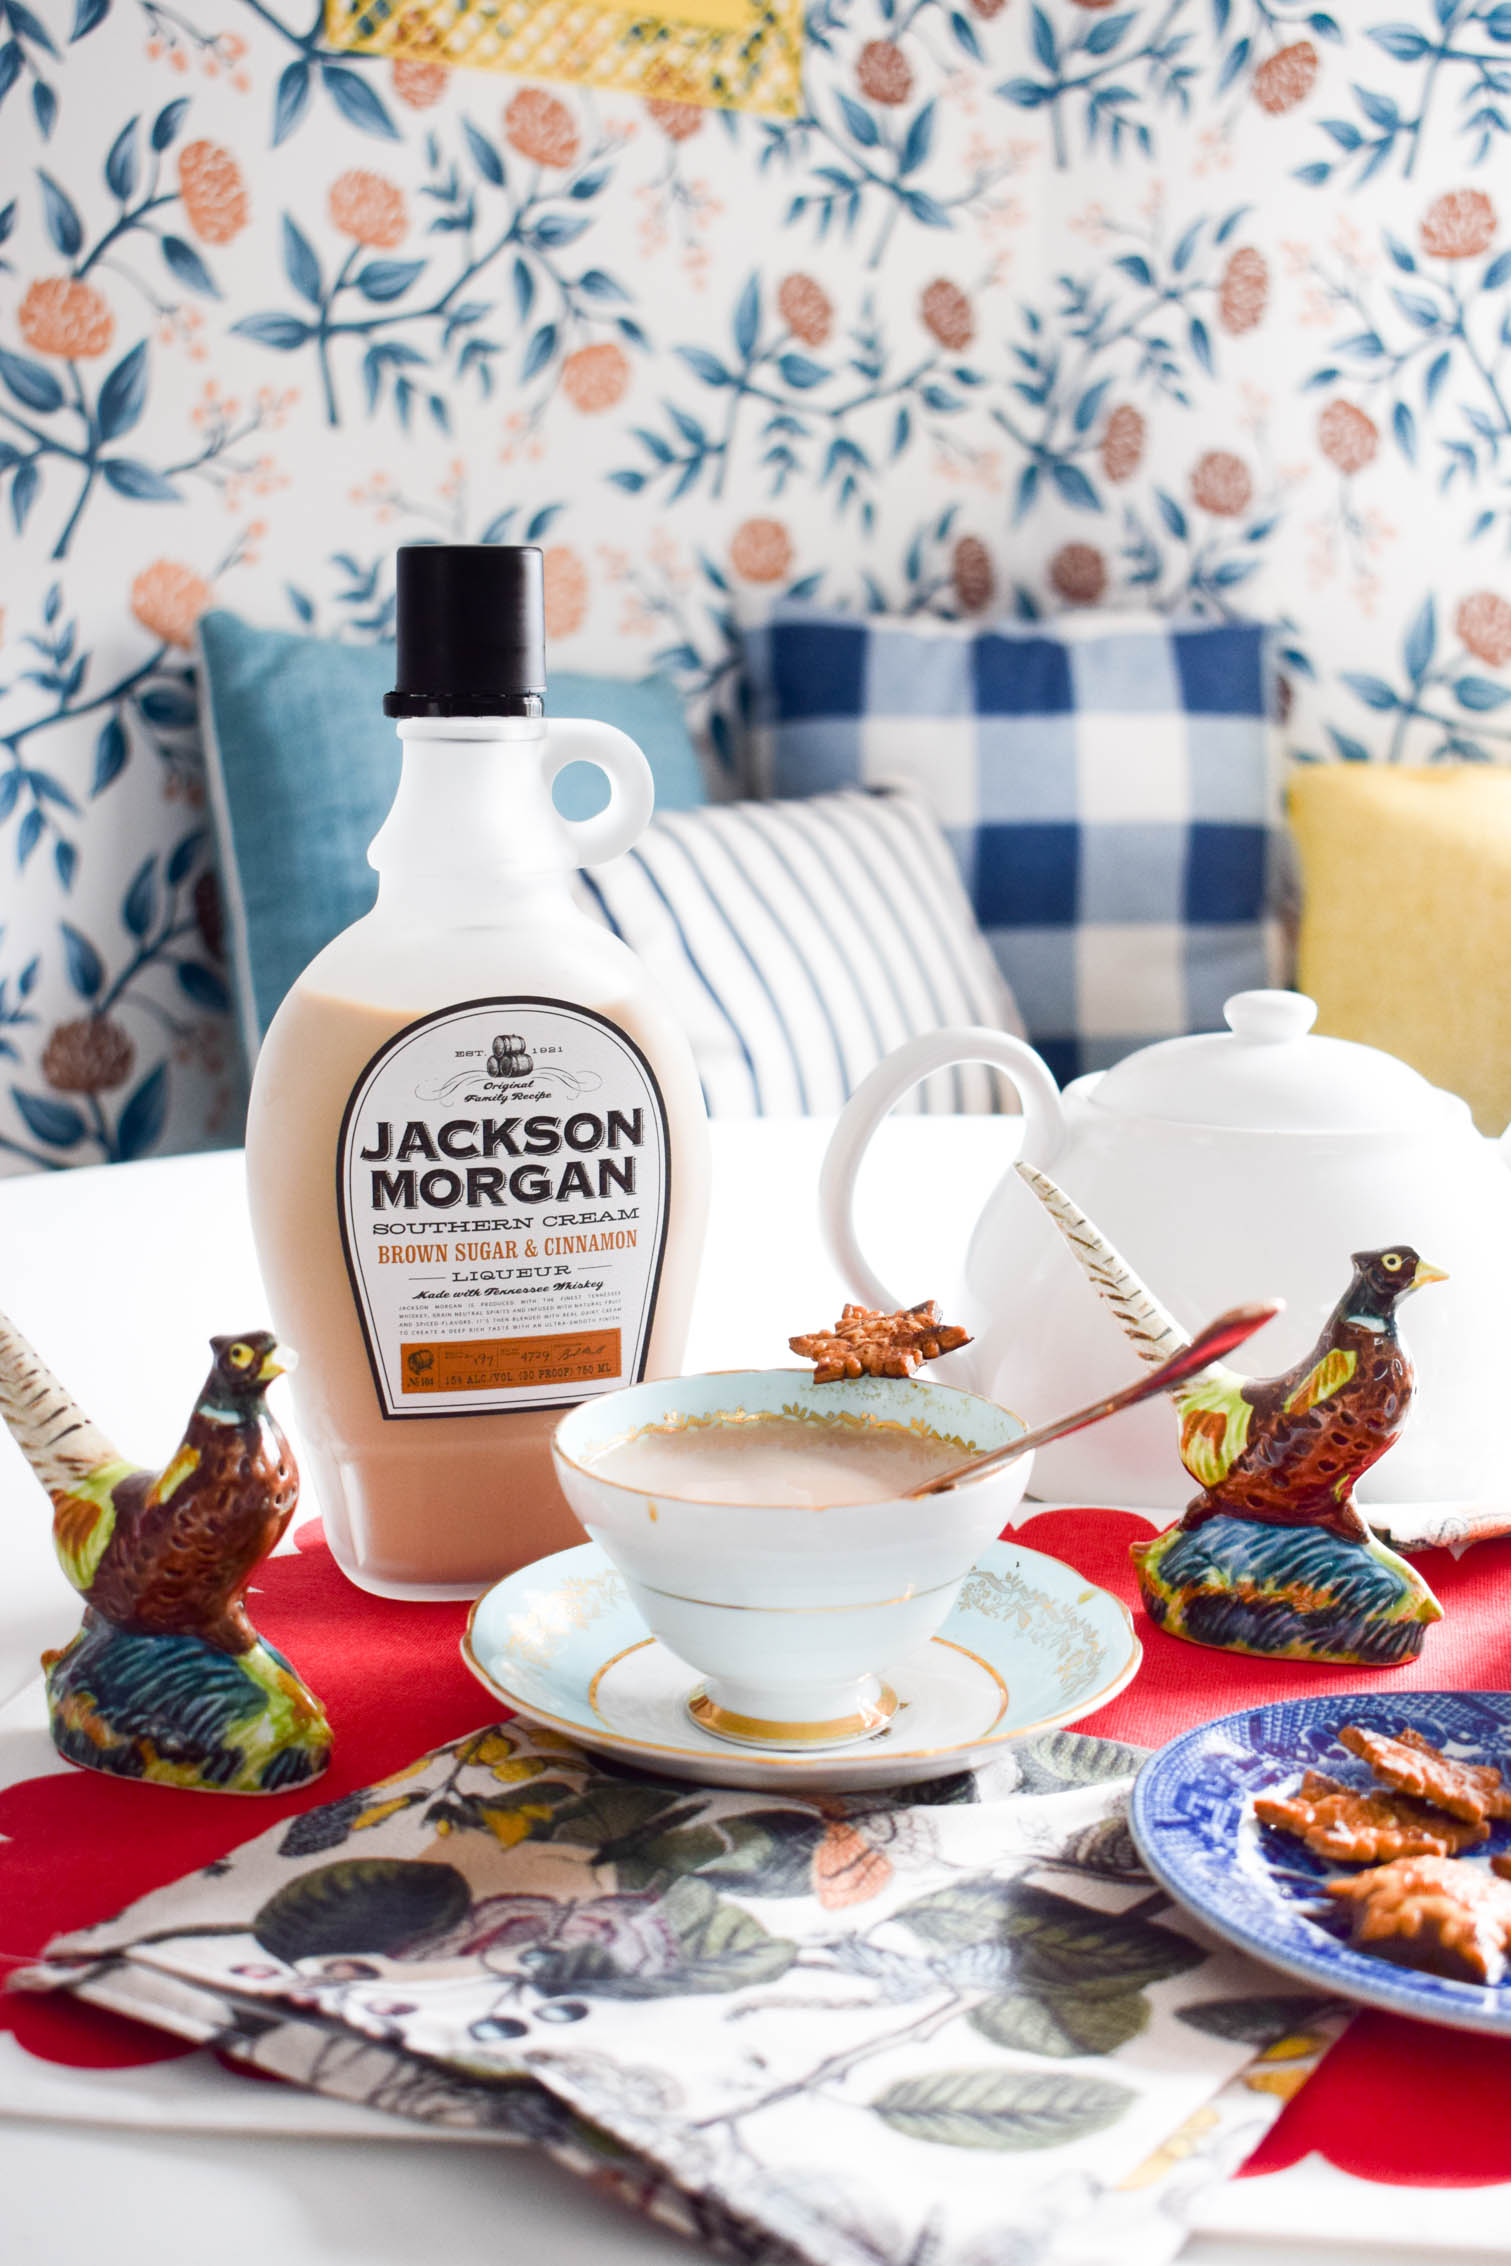 whiskey and tea are the combo you need to incorporate into your hosting arsenal! With Jackson Morgan's Southern Cream it's even easier, all you need are guests.